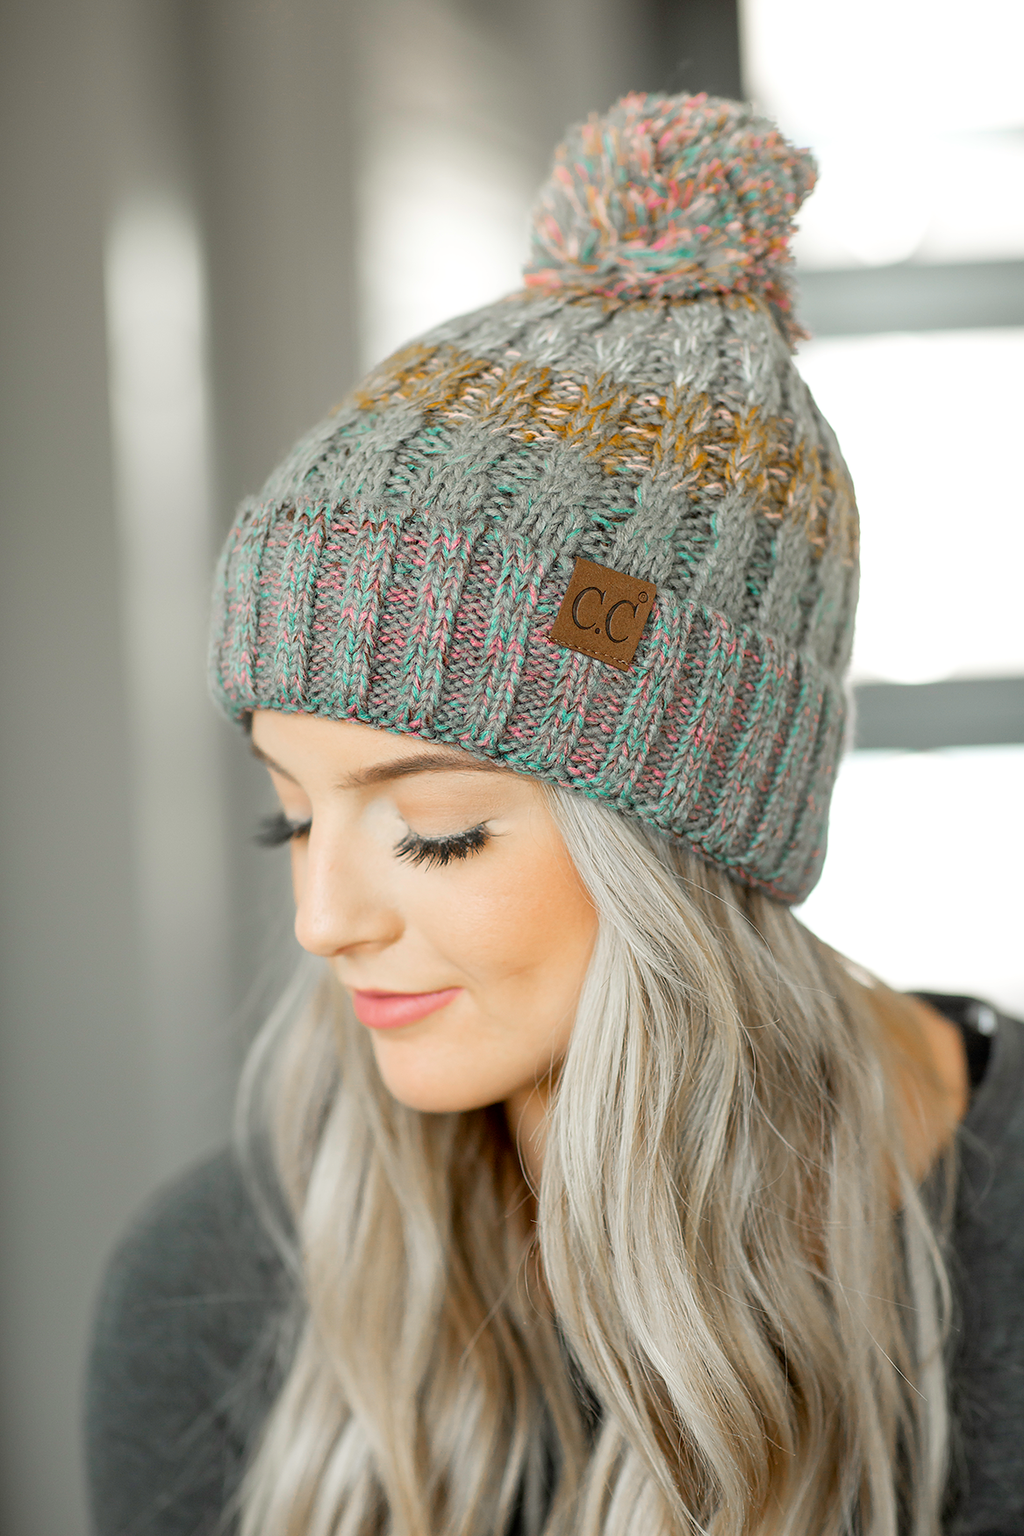 CC Knit Pom Beanie in Multi Colored Gray